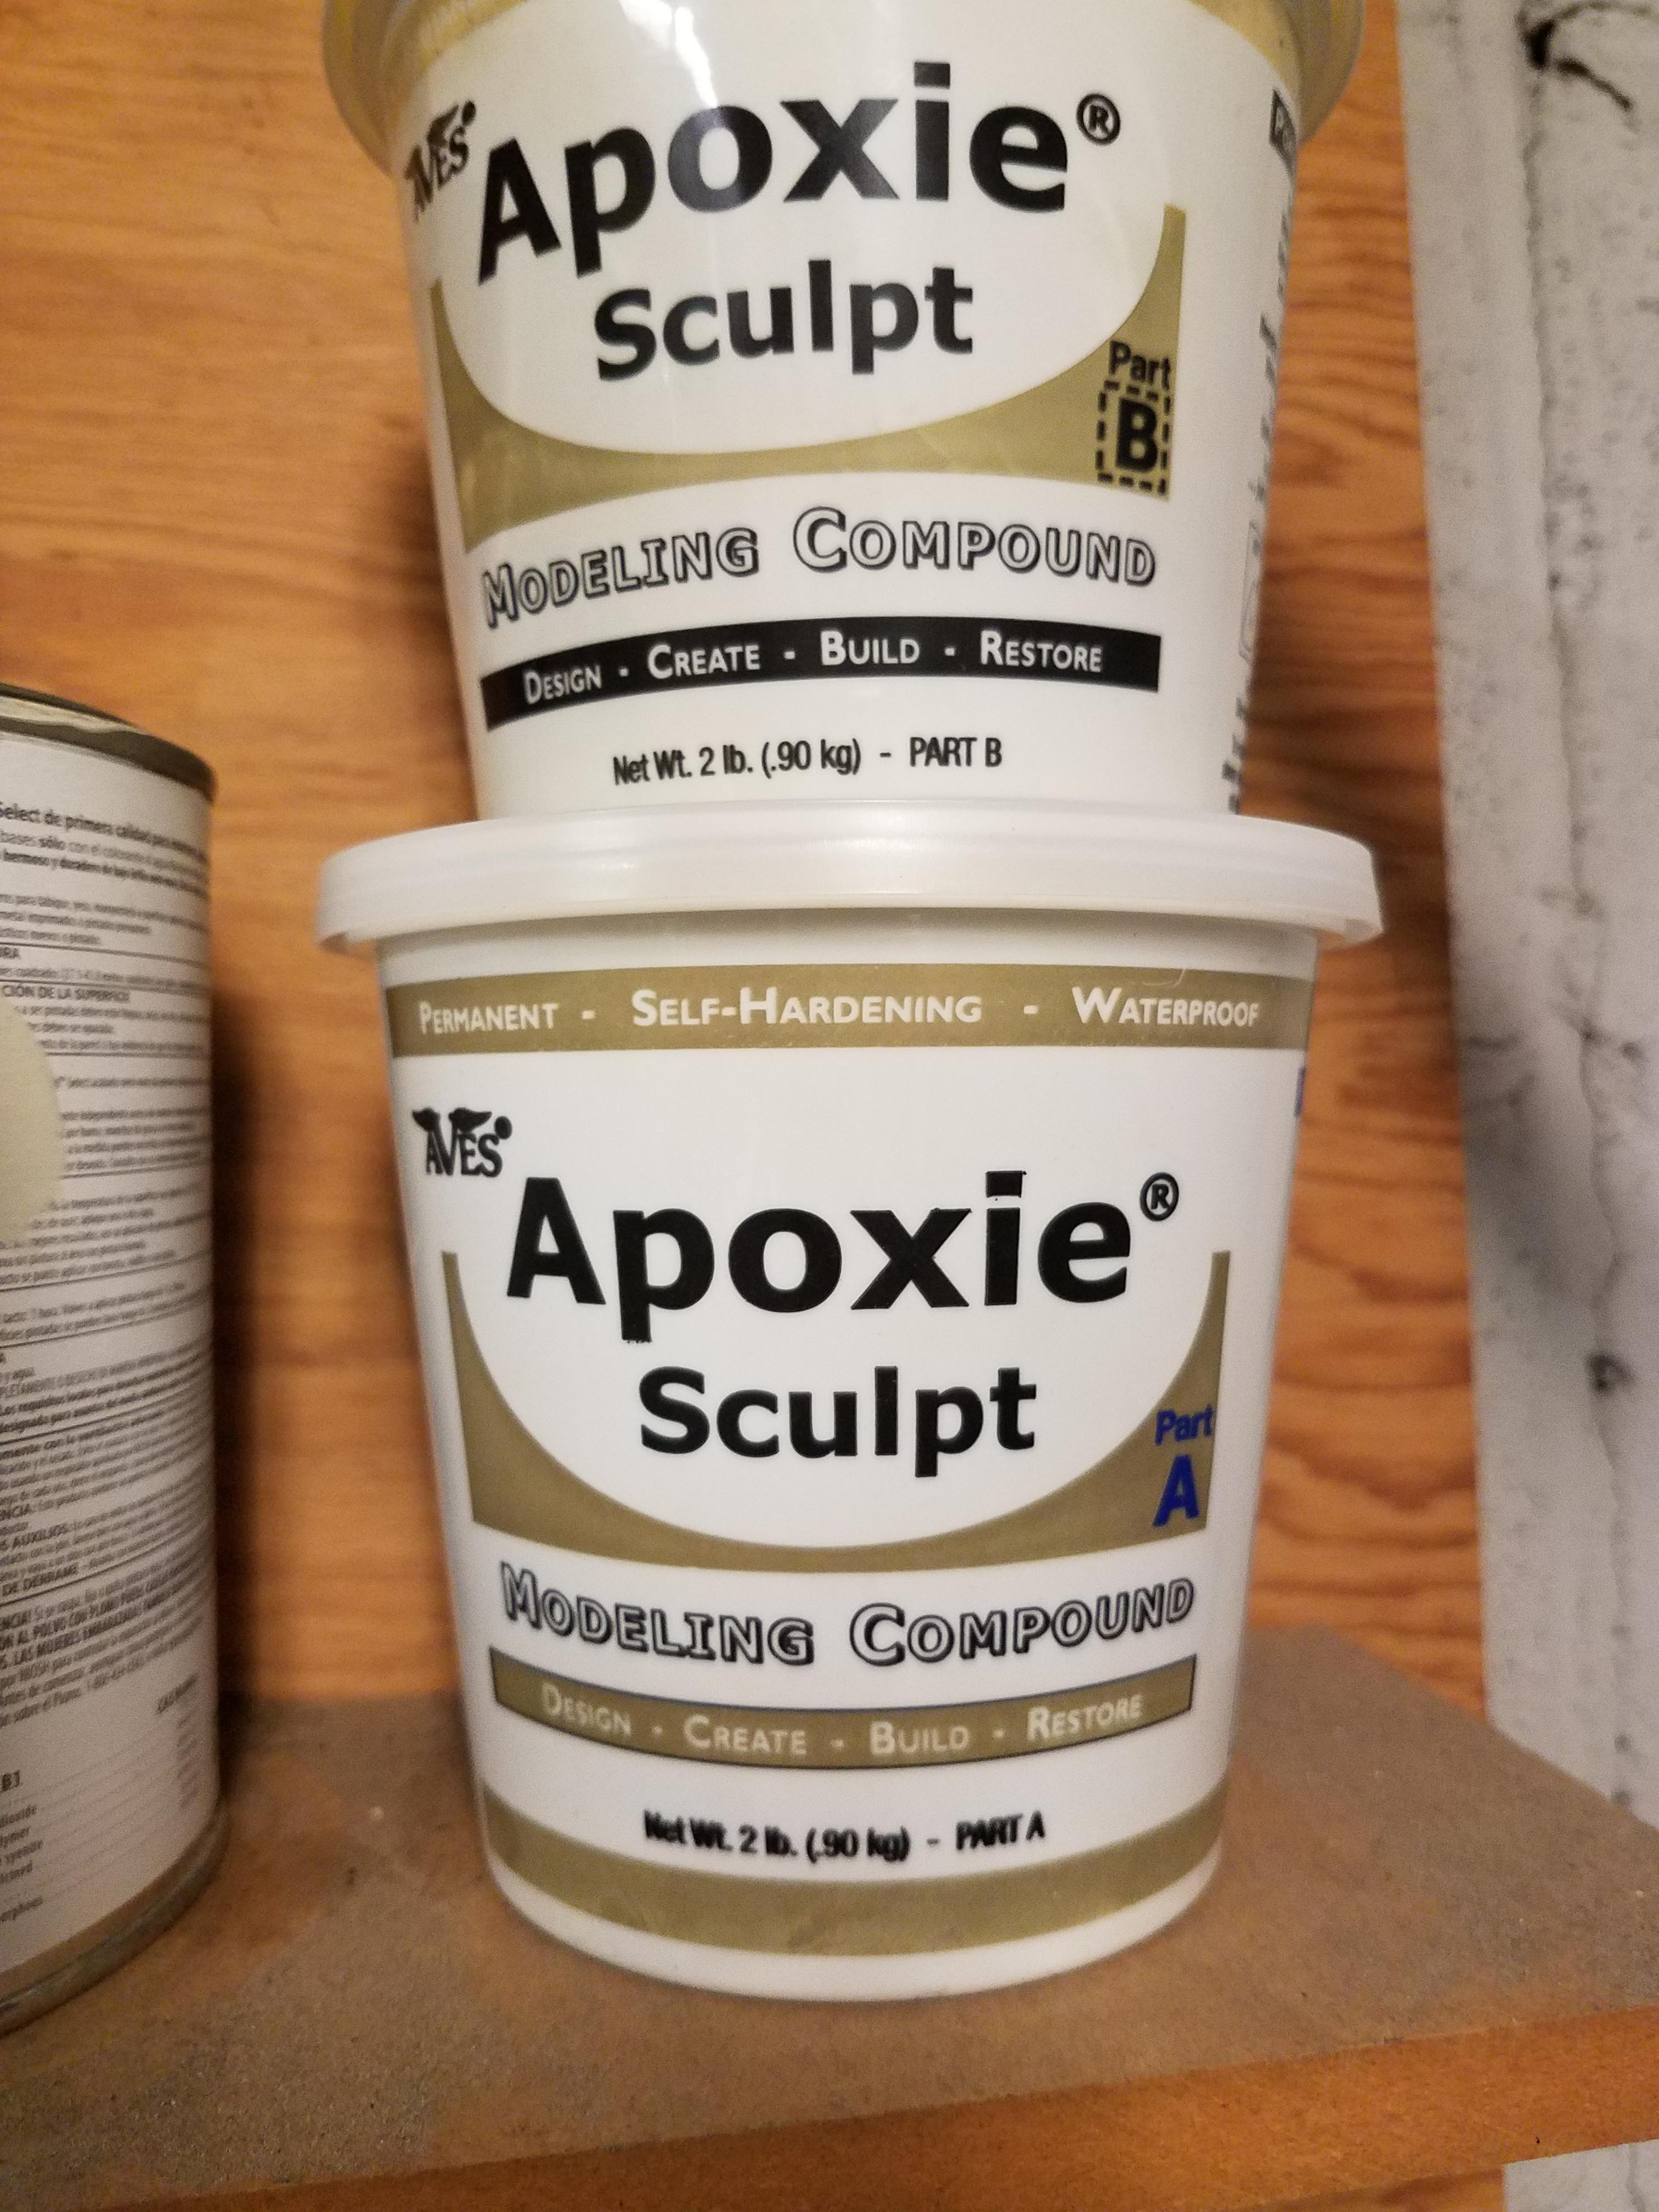 Two containers of Apoxie sculpt